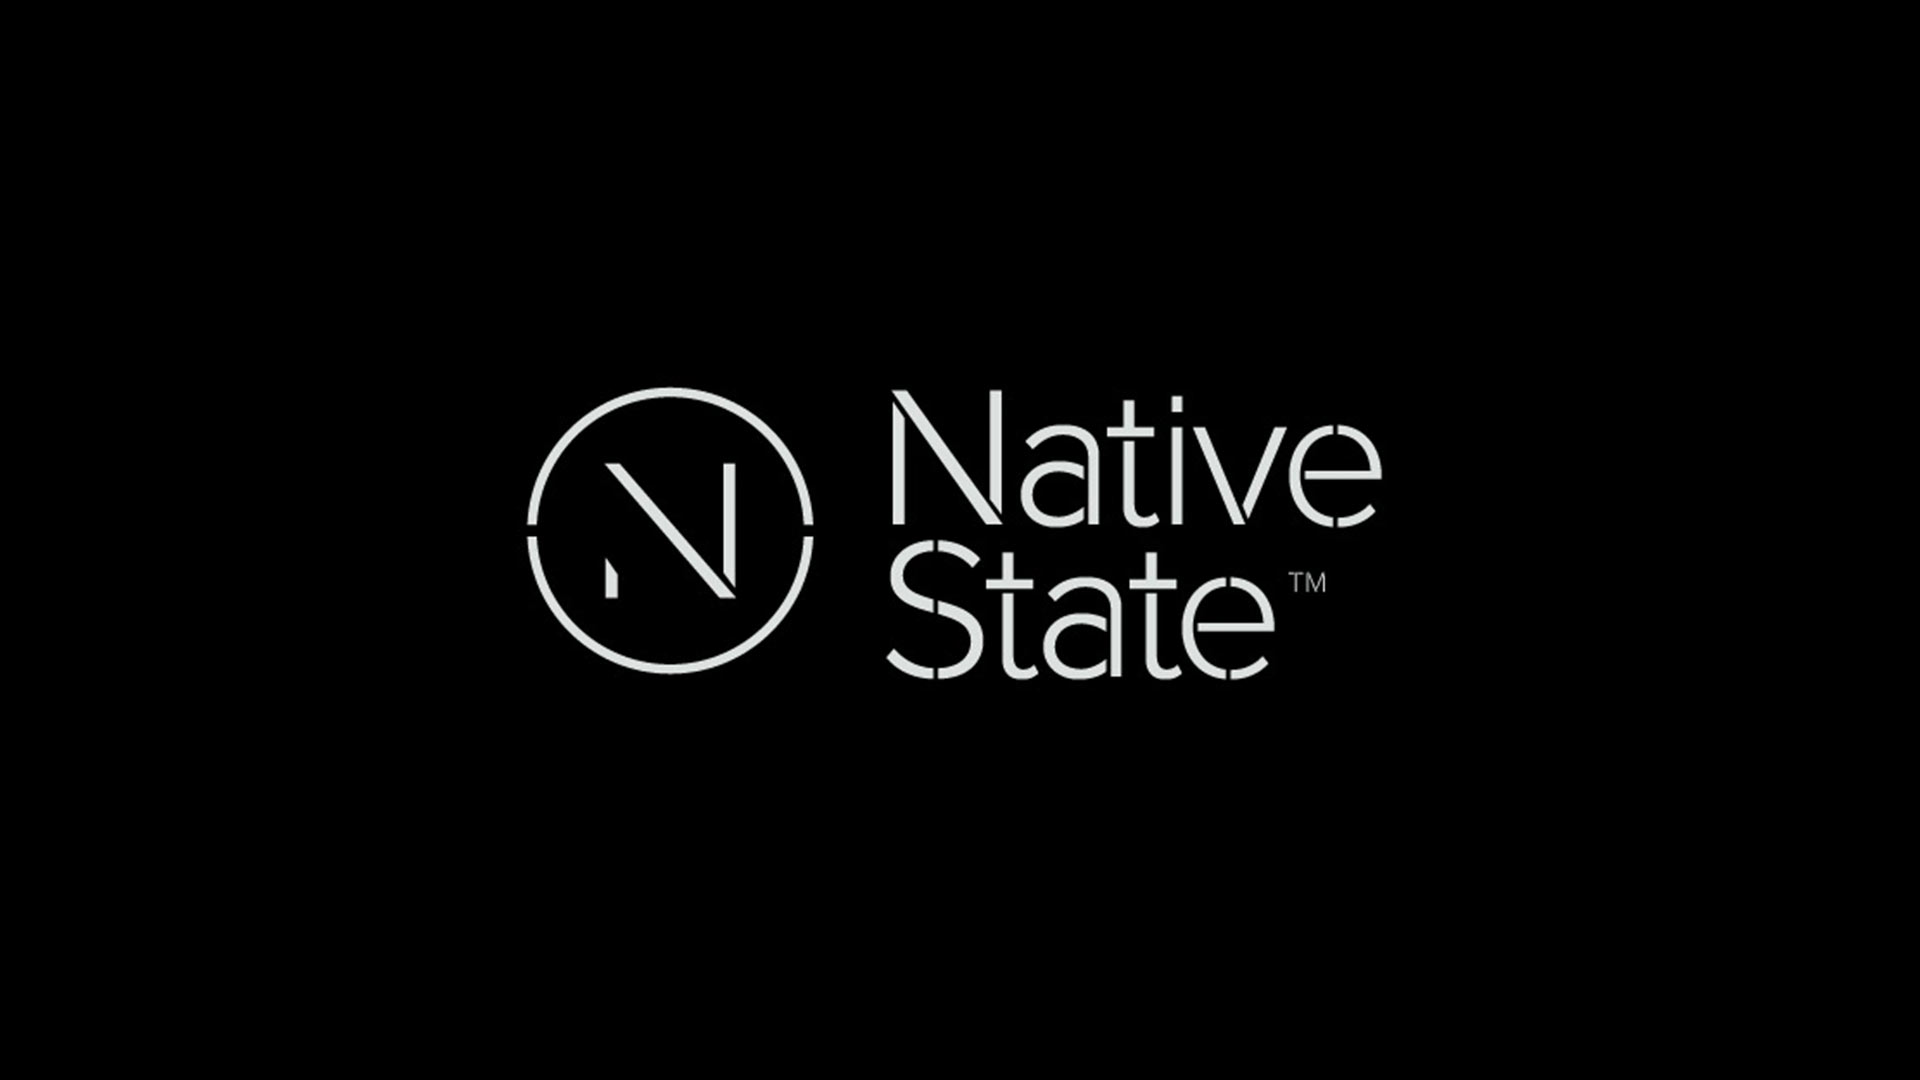 nativestate.jpg